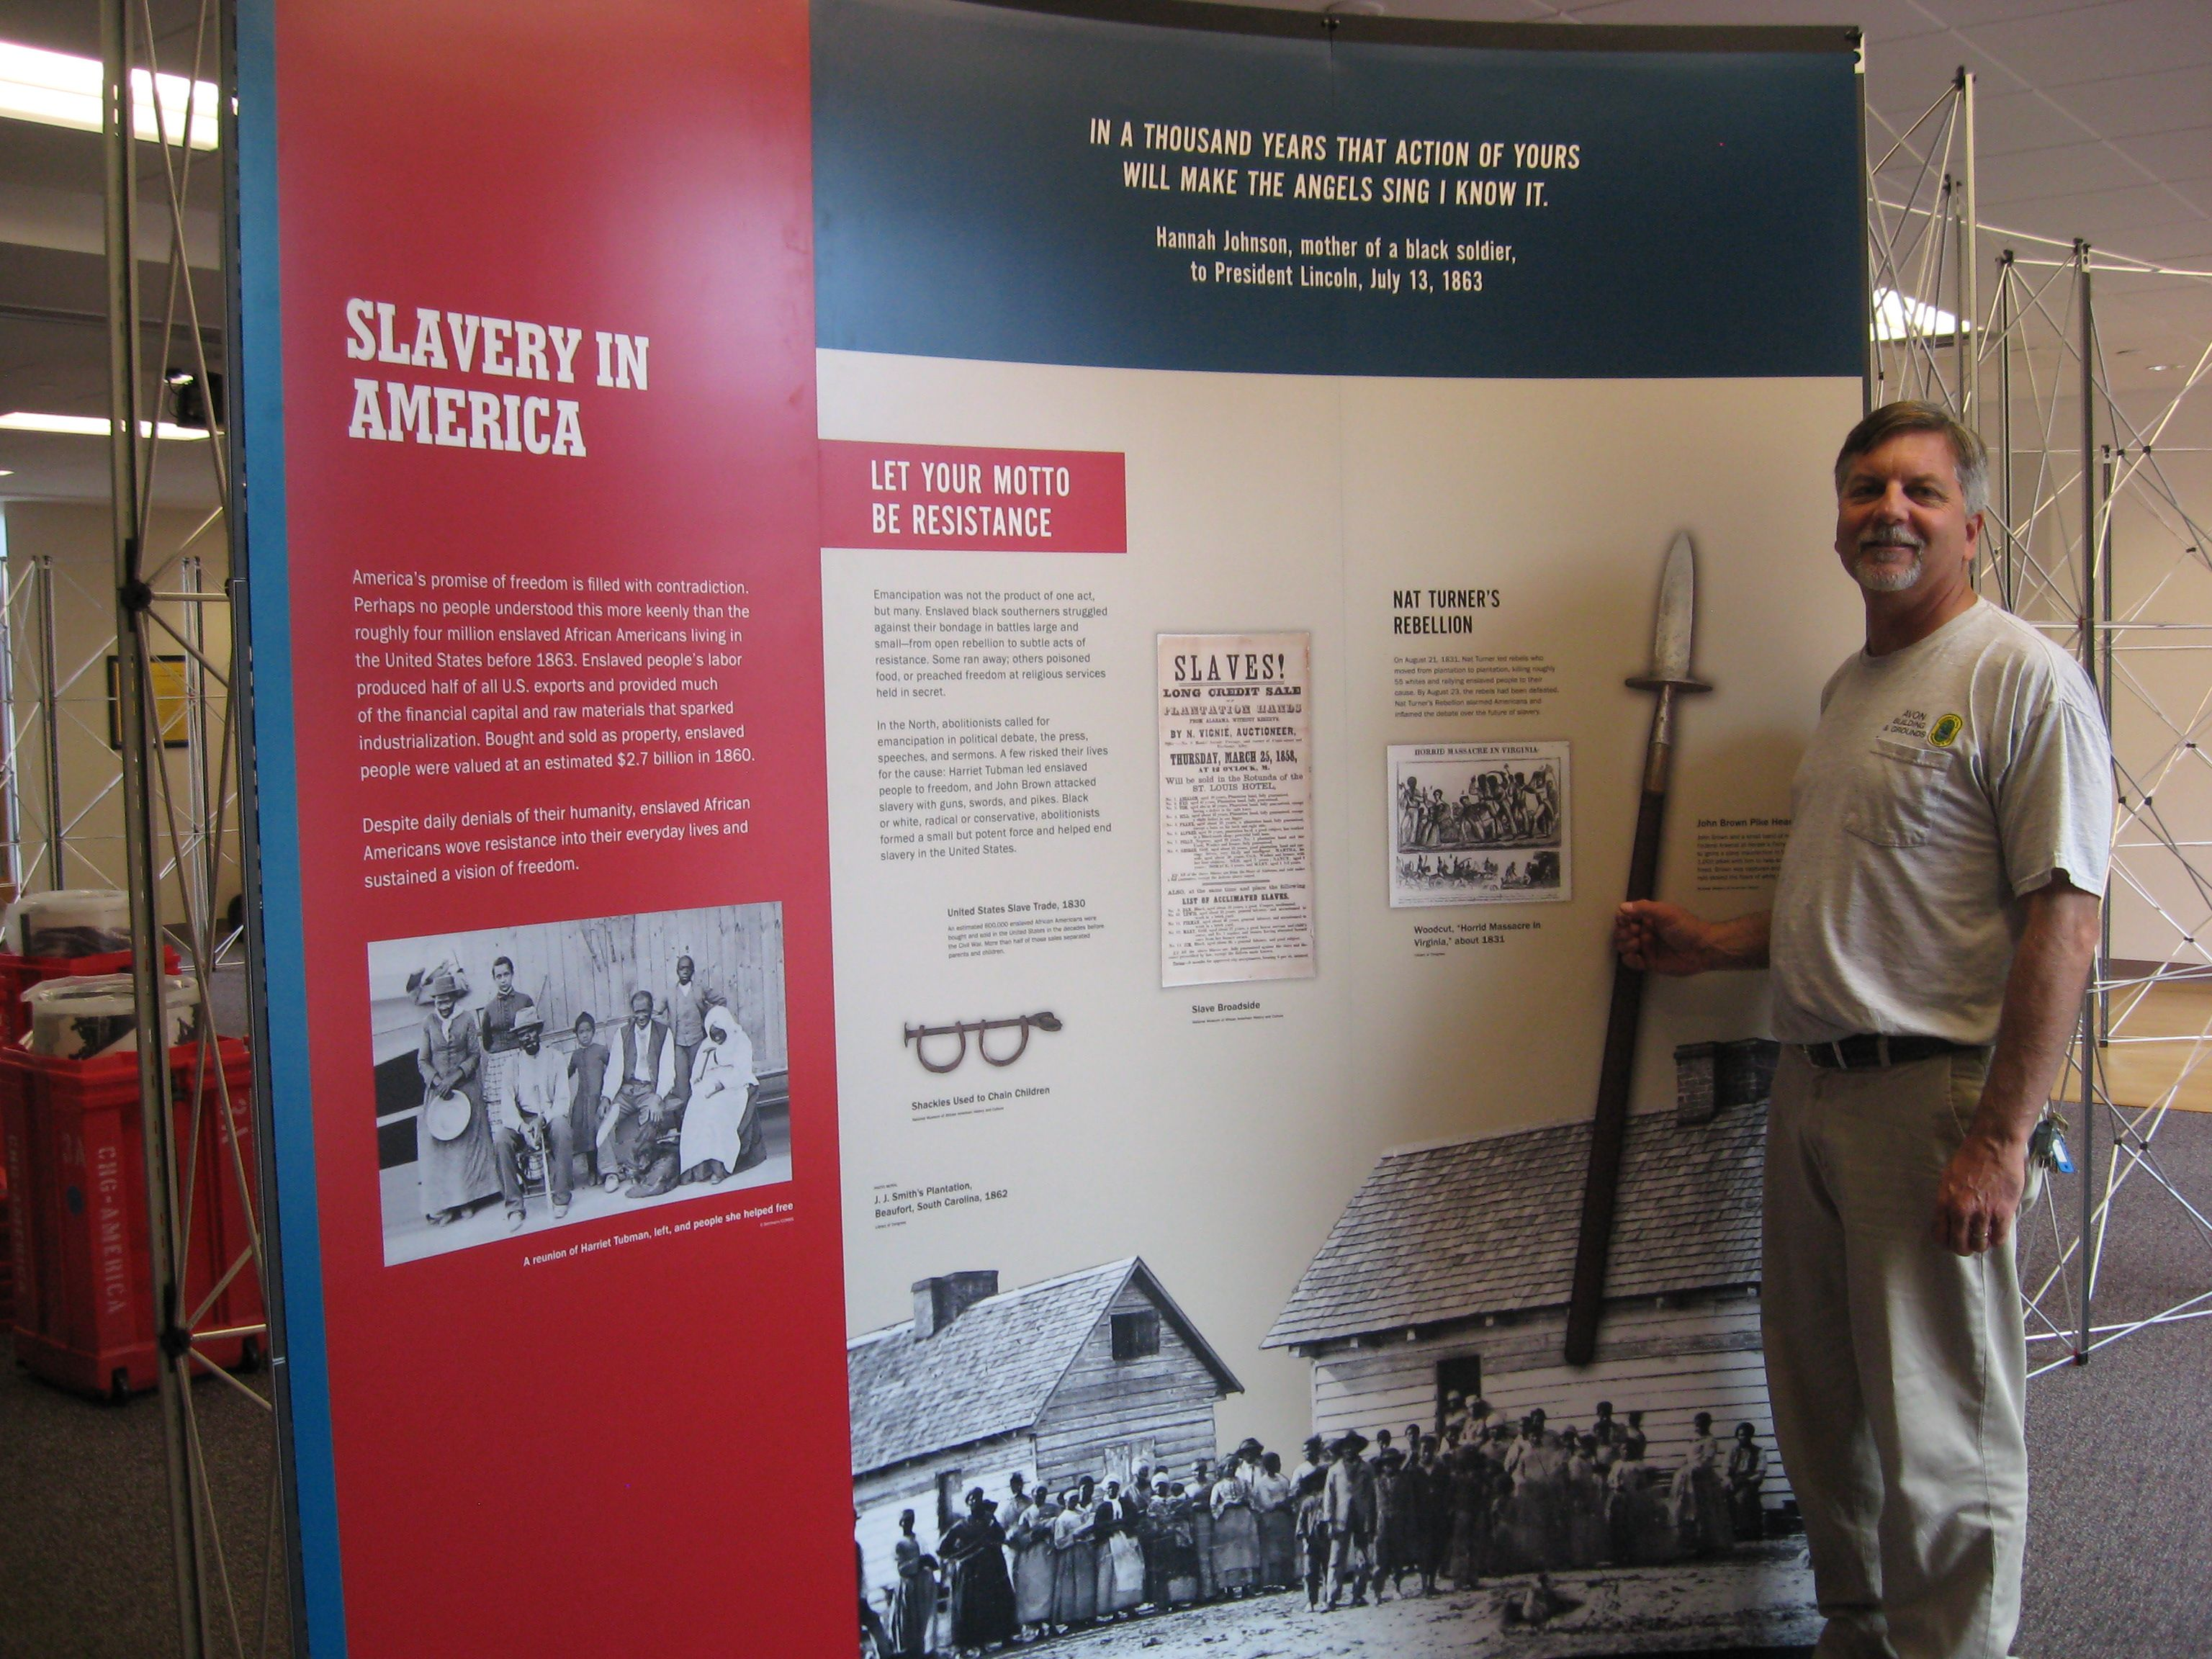 Paul Hoekman Exhibit Installer Acting Foreman Of The Public Works Dept Avon Ct At Changing America Exhibit Avon Ct America Will Turner Slavery